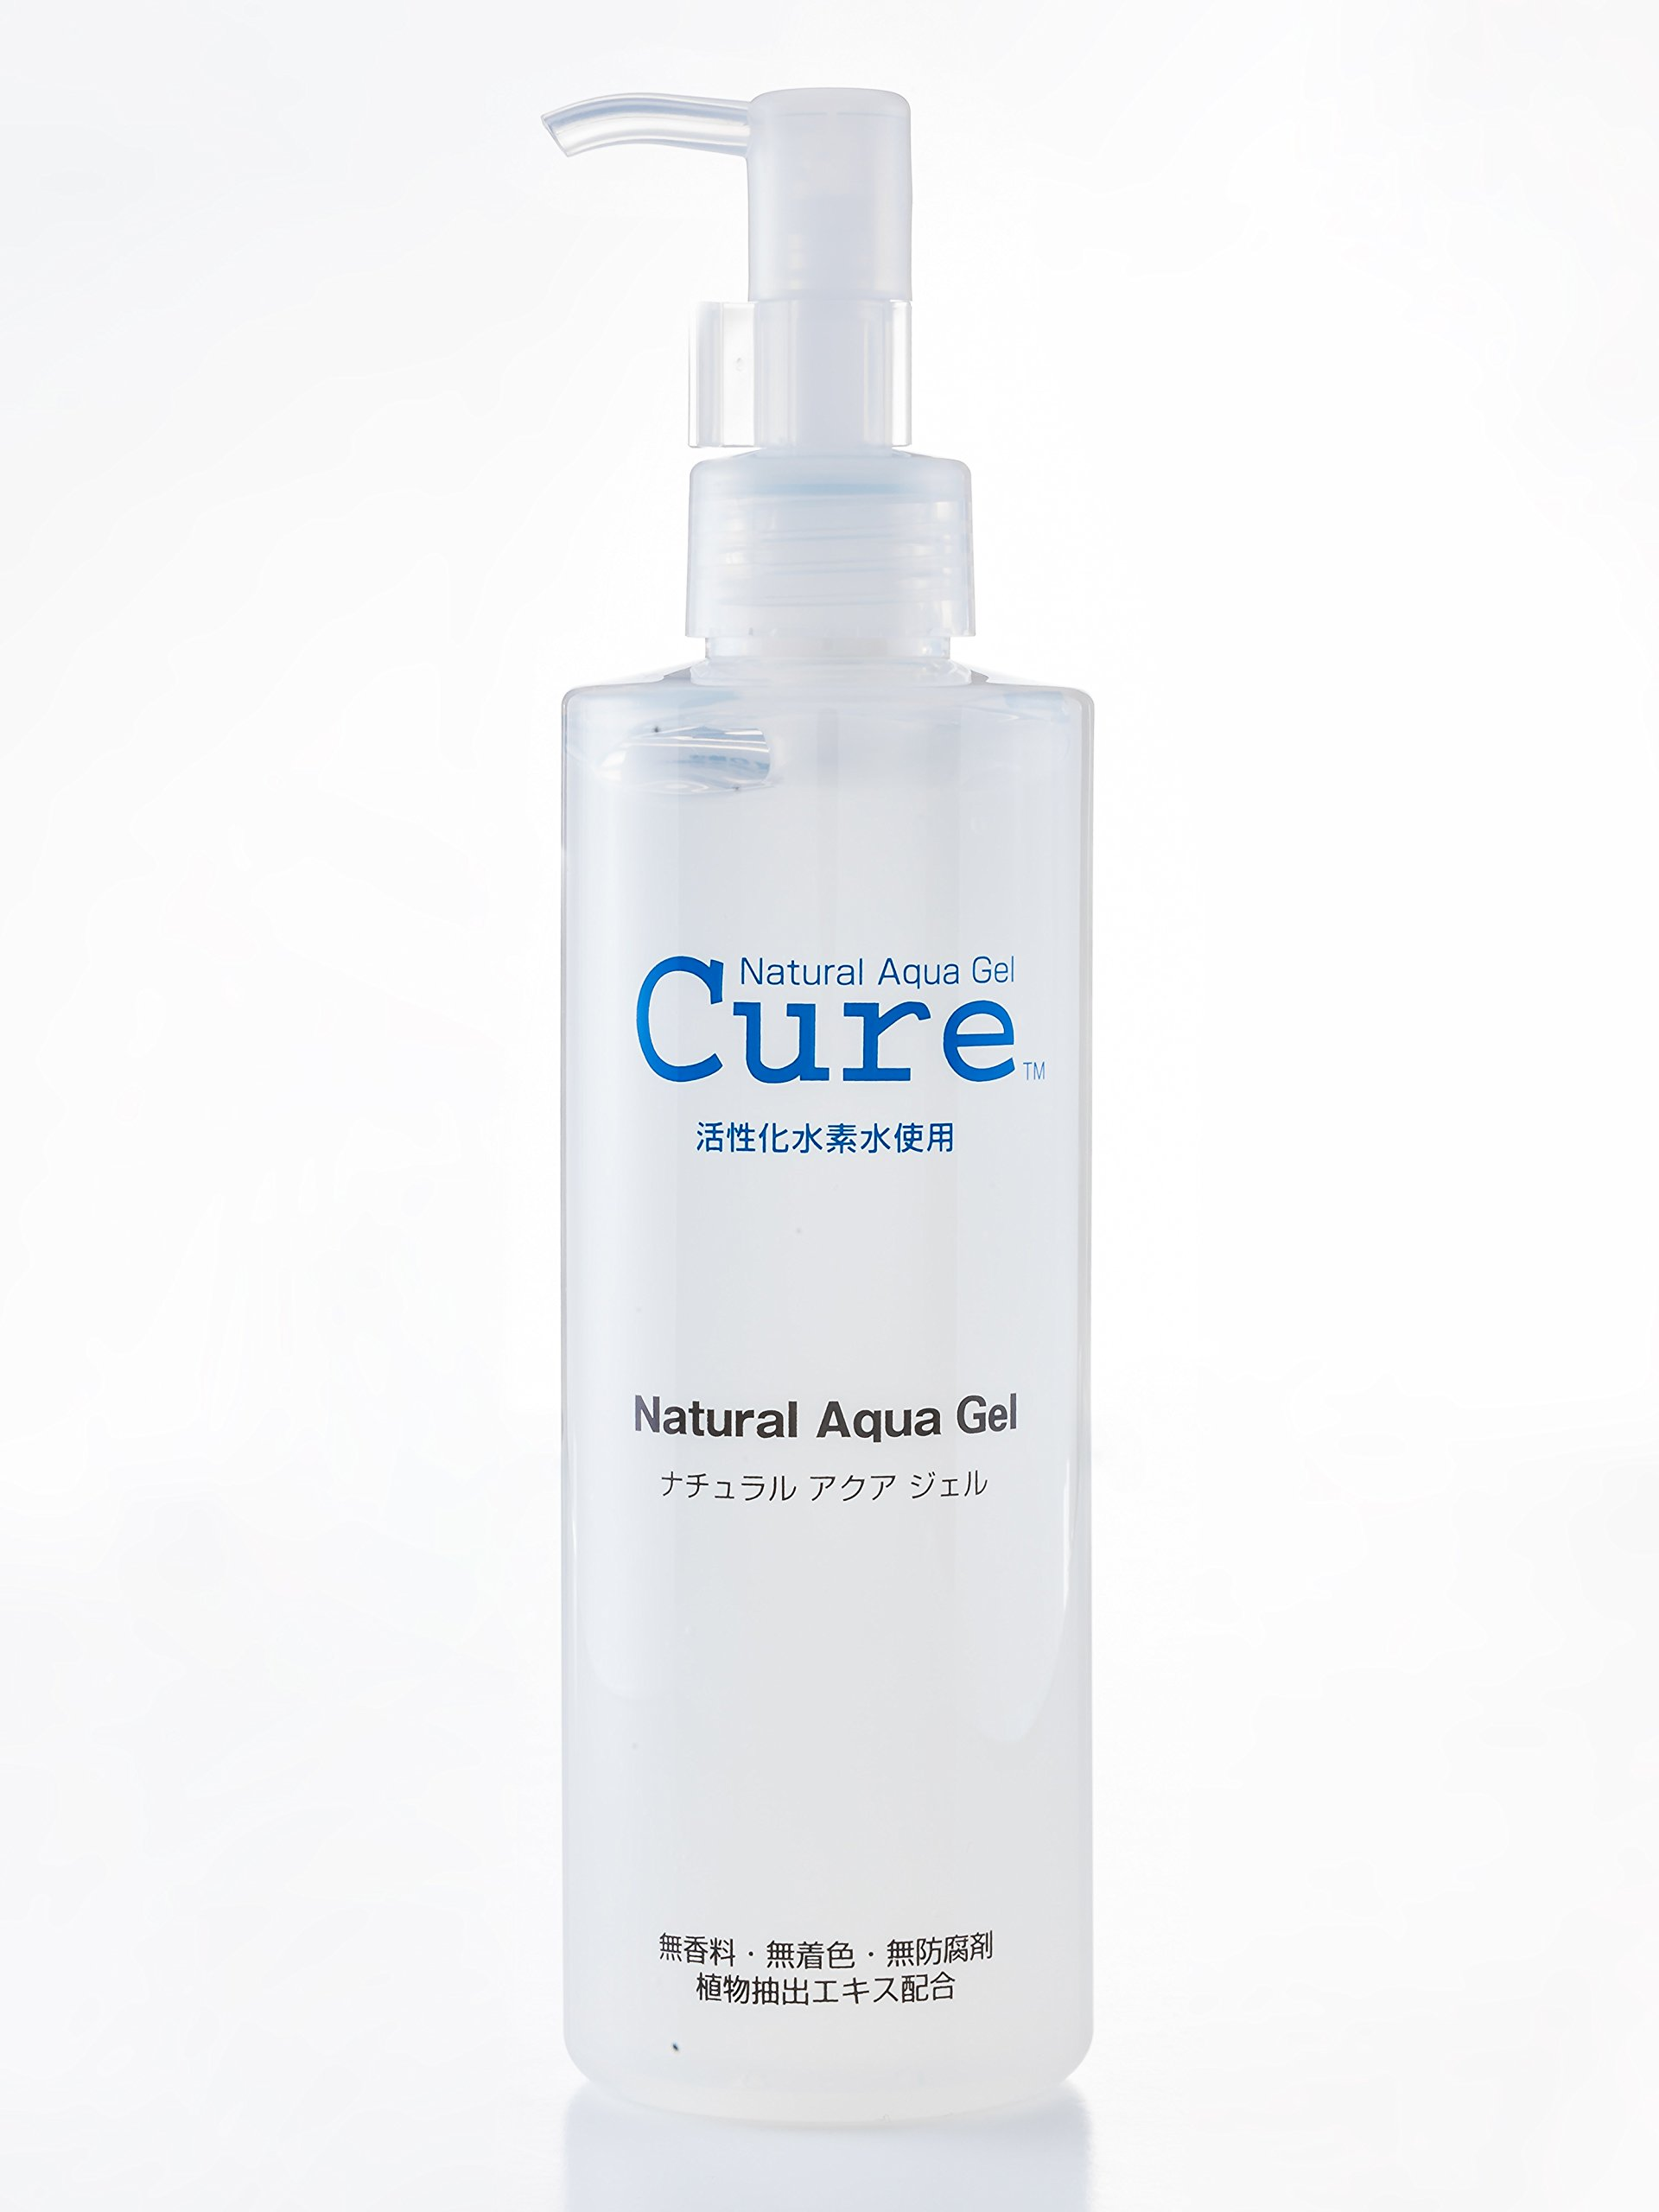 Cure Natural Aqua Gel, 250 ml by NATURAL AQUA GEL CURE (Image #2)